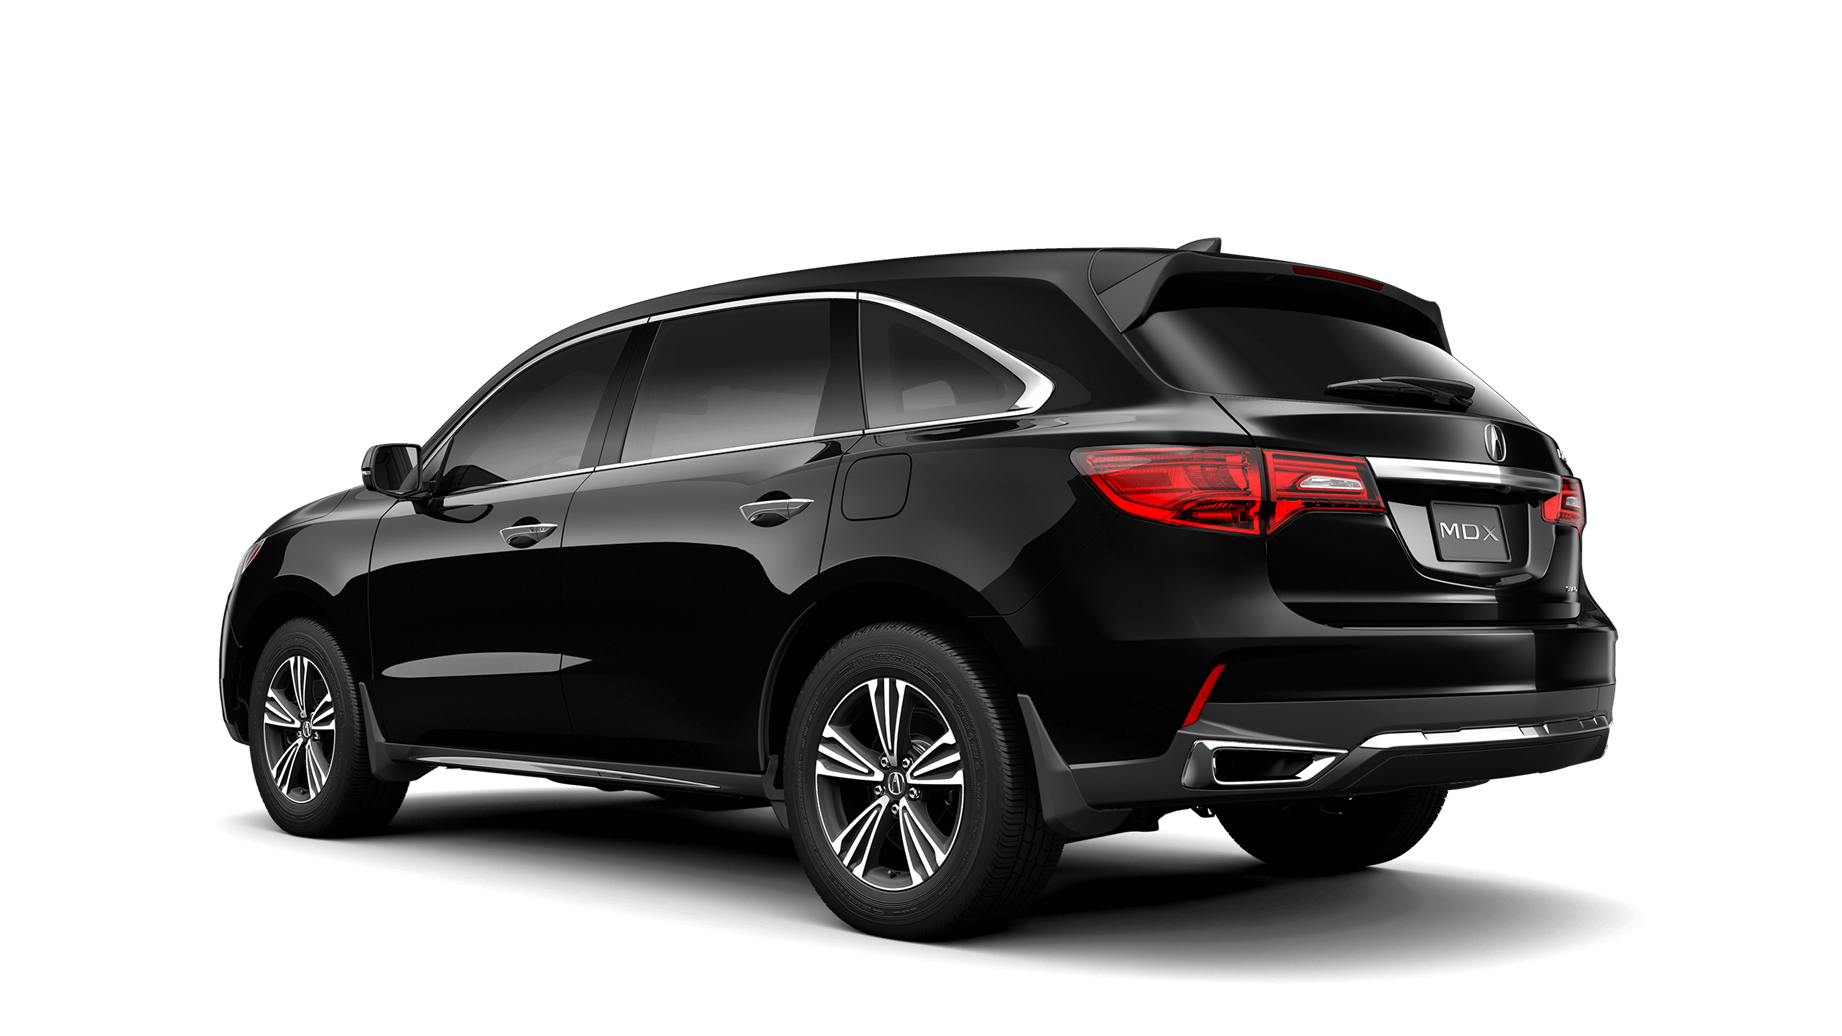 rdx small looks suv review test more original and power instrumented new acura car reviews s news driver revealed photo